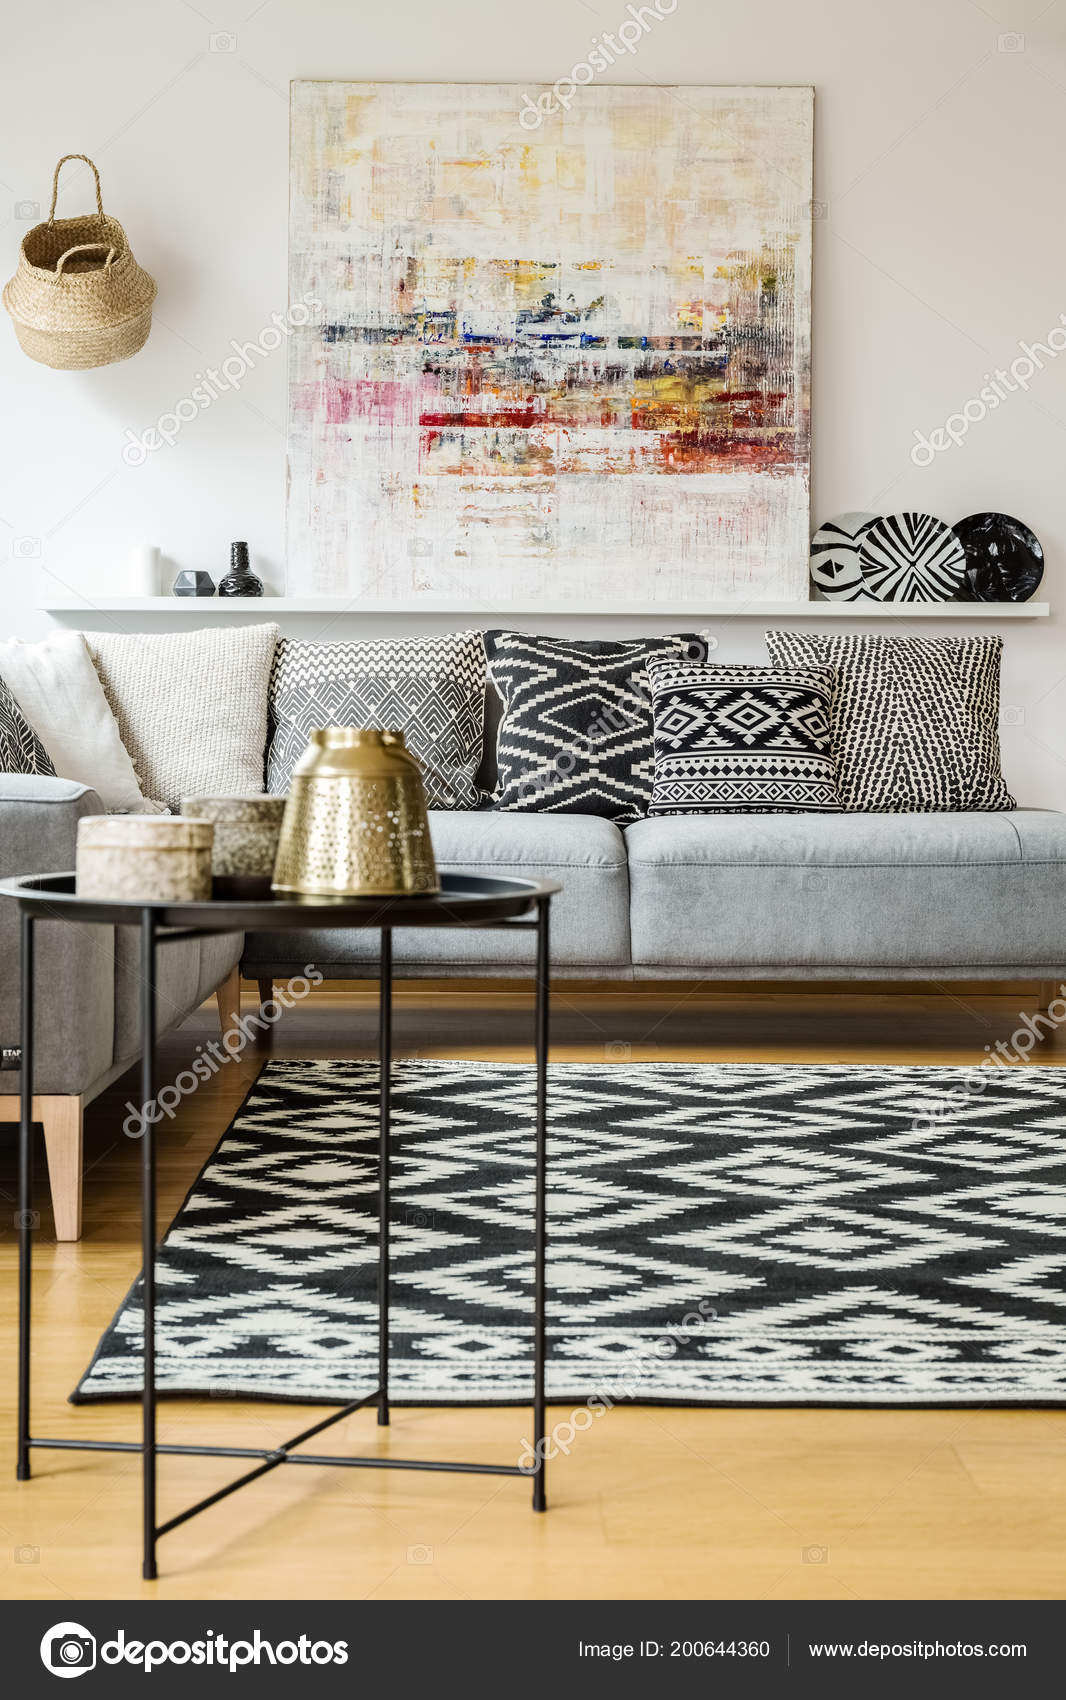 Patterned Carpet Patterned Carpet Cushions Grey Sofa Modern Living Room Interior